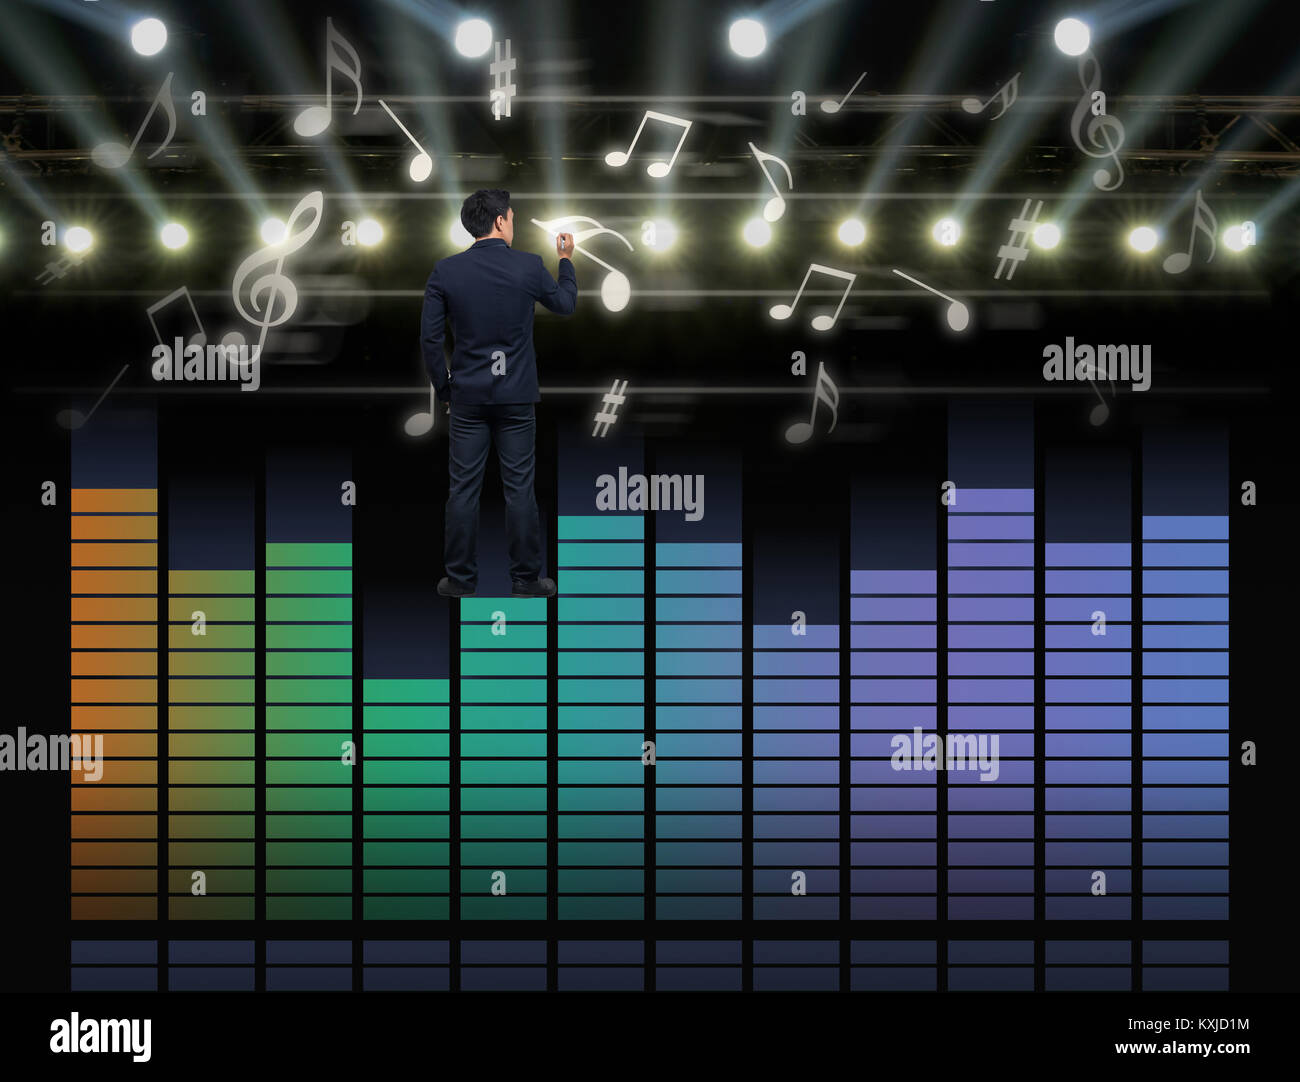 Radio Waves Diagram Stock Photos Images Businessman Standing Over The Sound Equalizer And Drawing Music Note On Dark Background